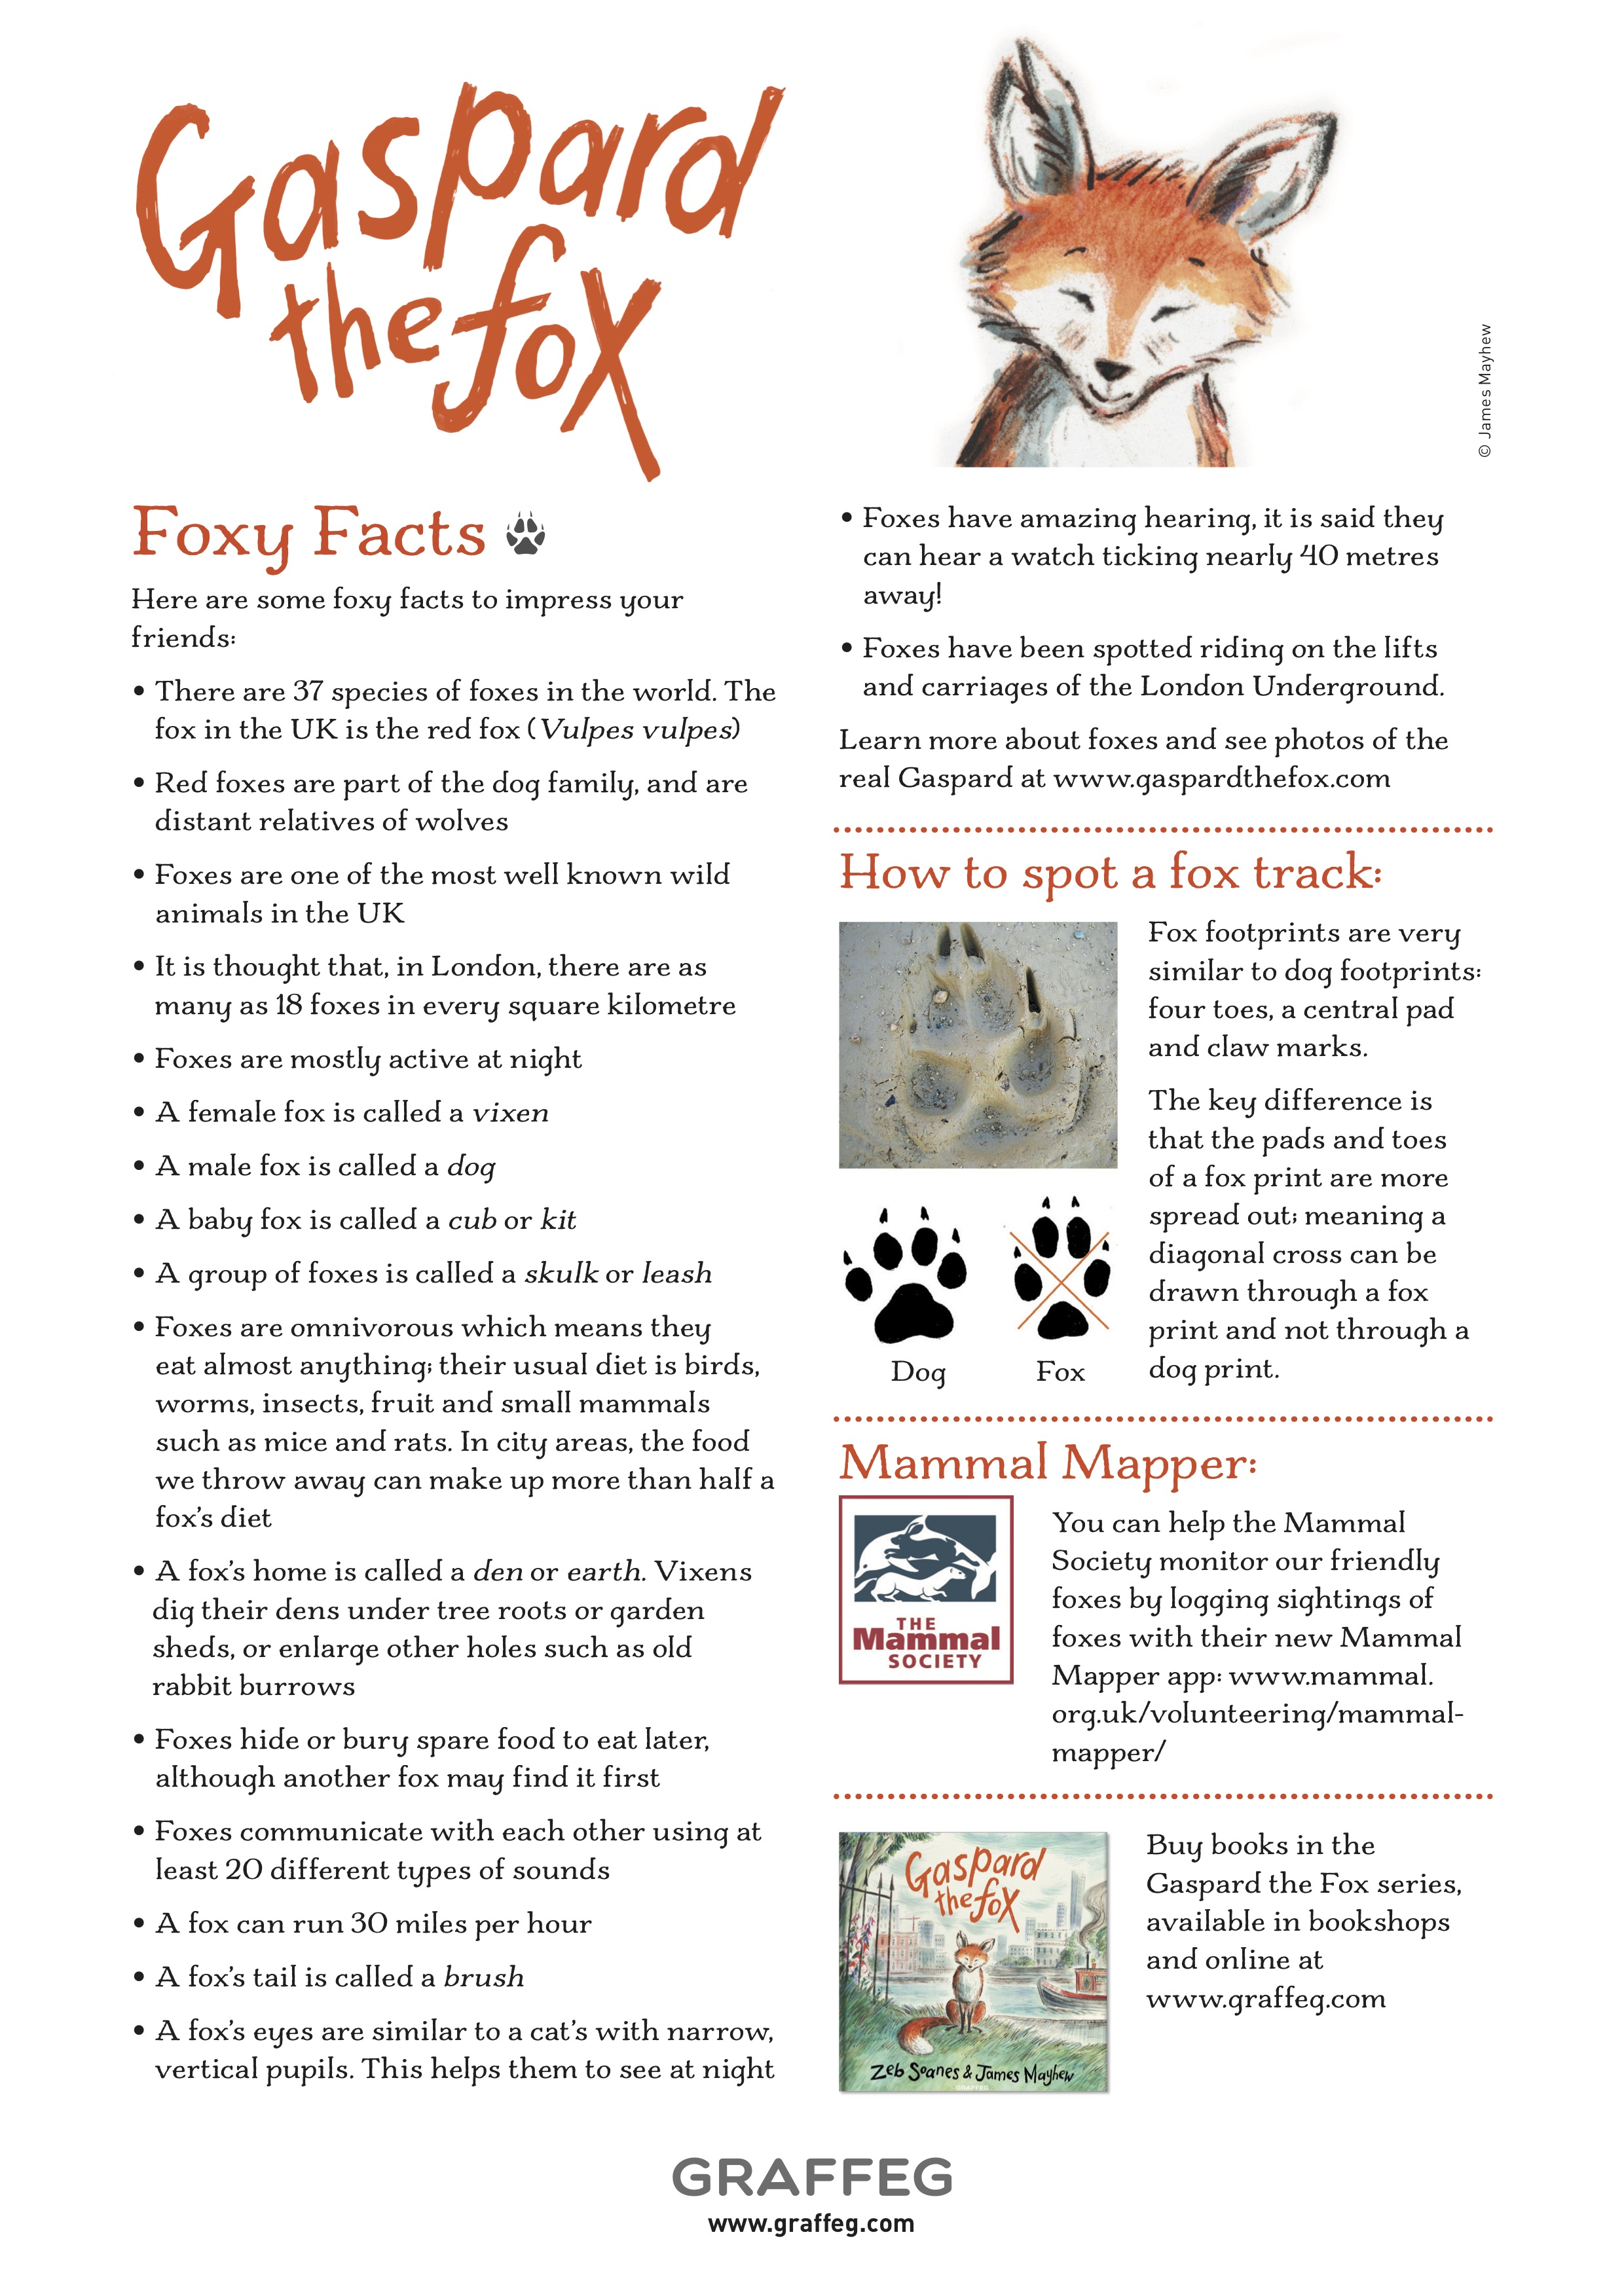 FOXY FACTSHEET - Download and print this poster full of foxy facts for your home or classroom